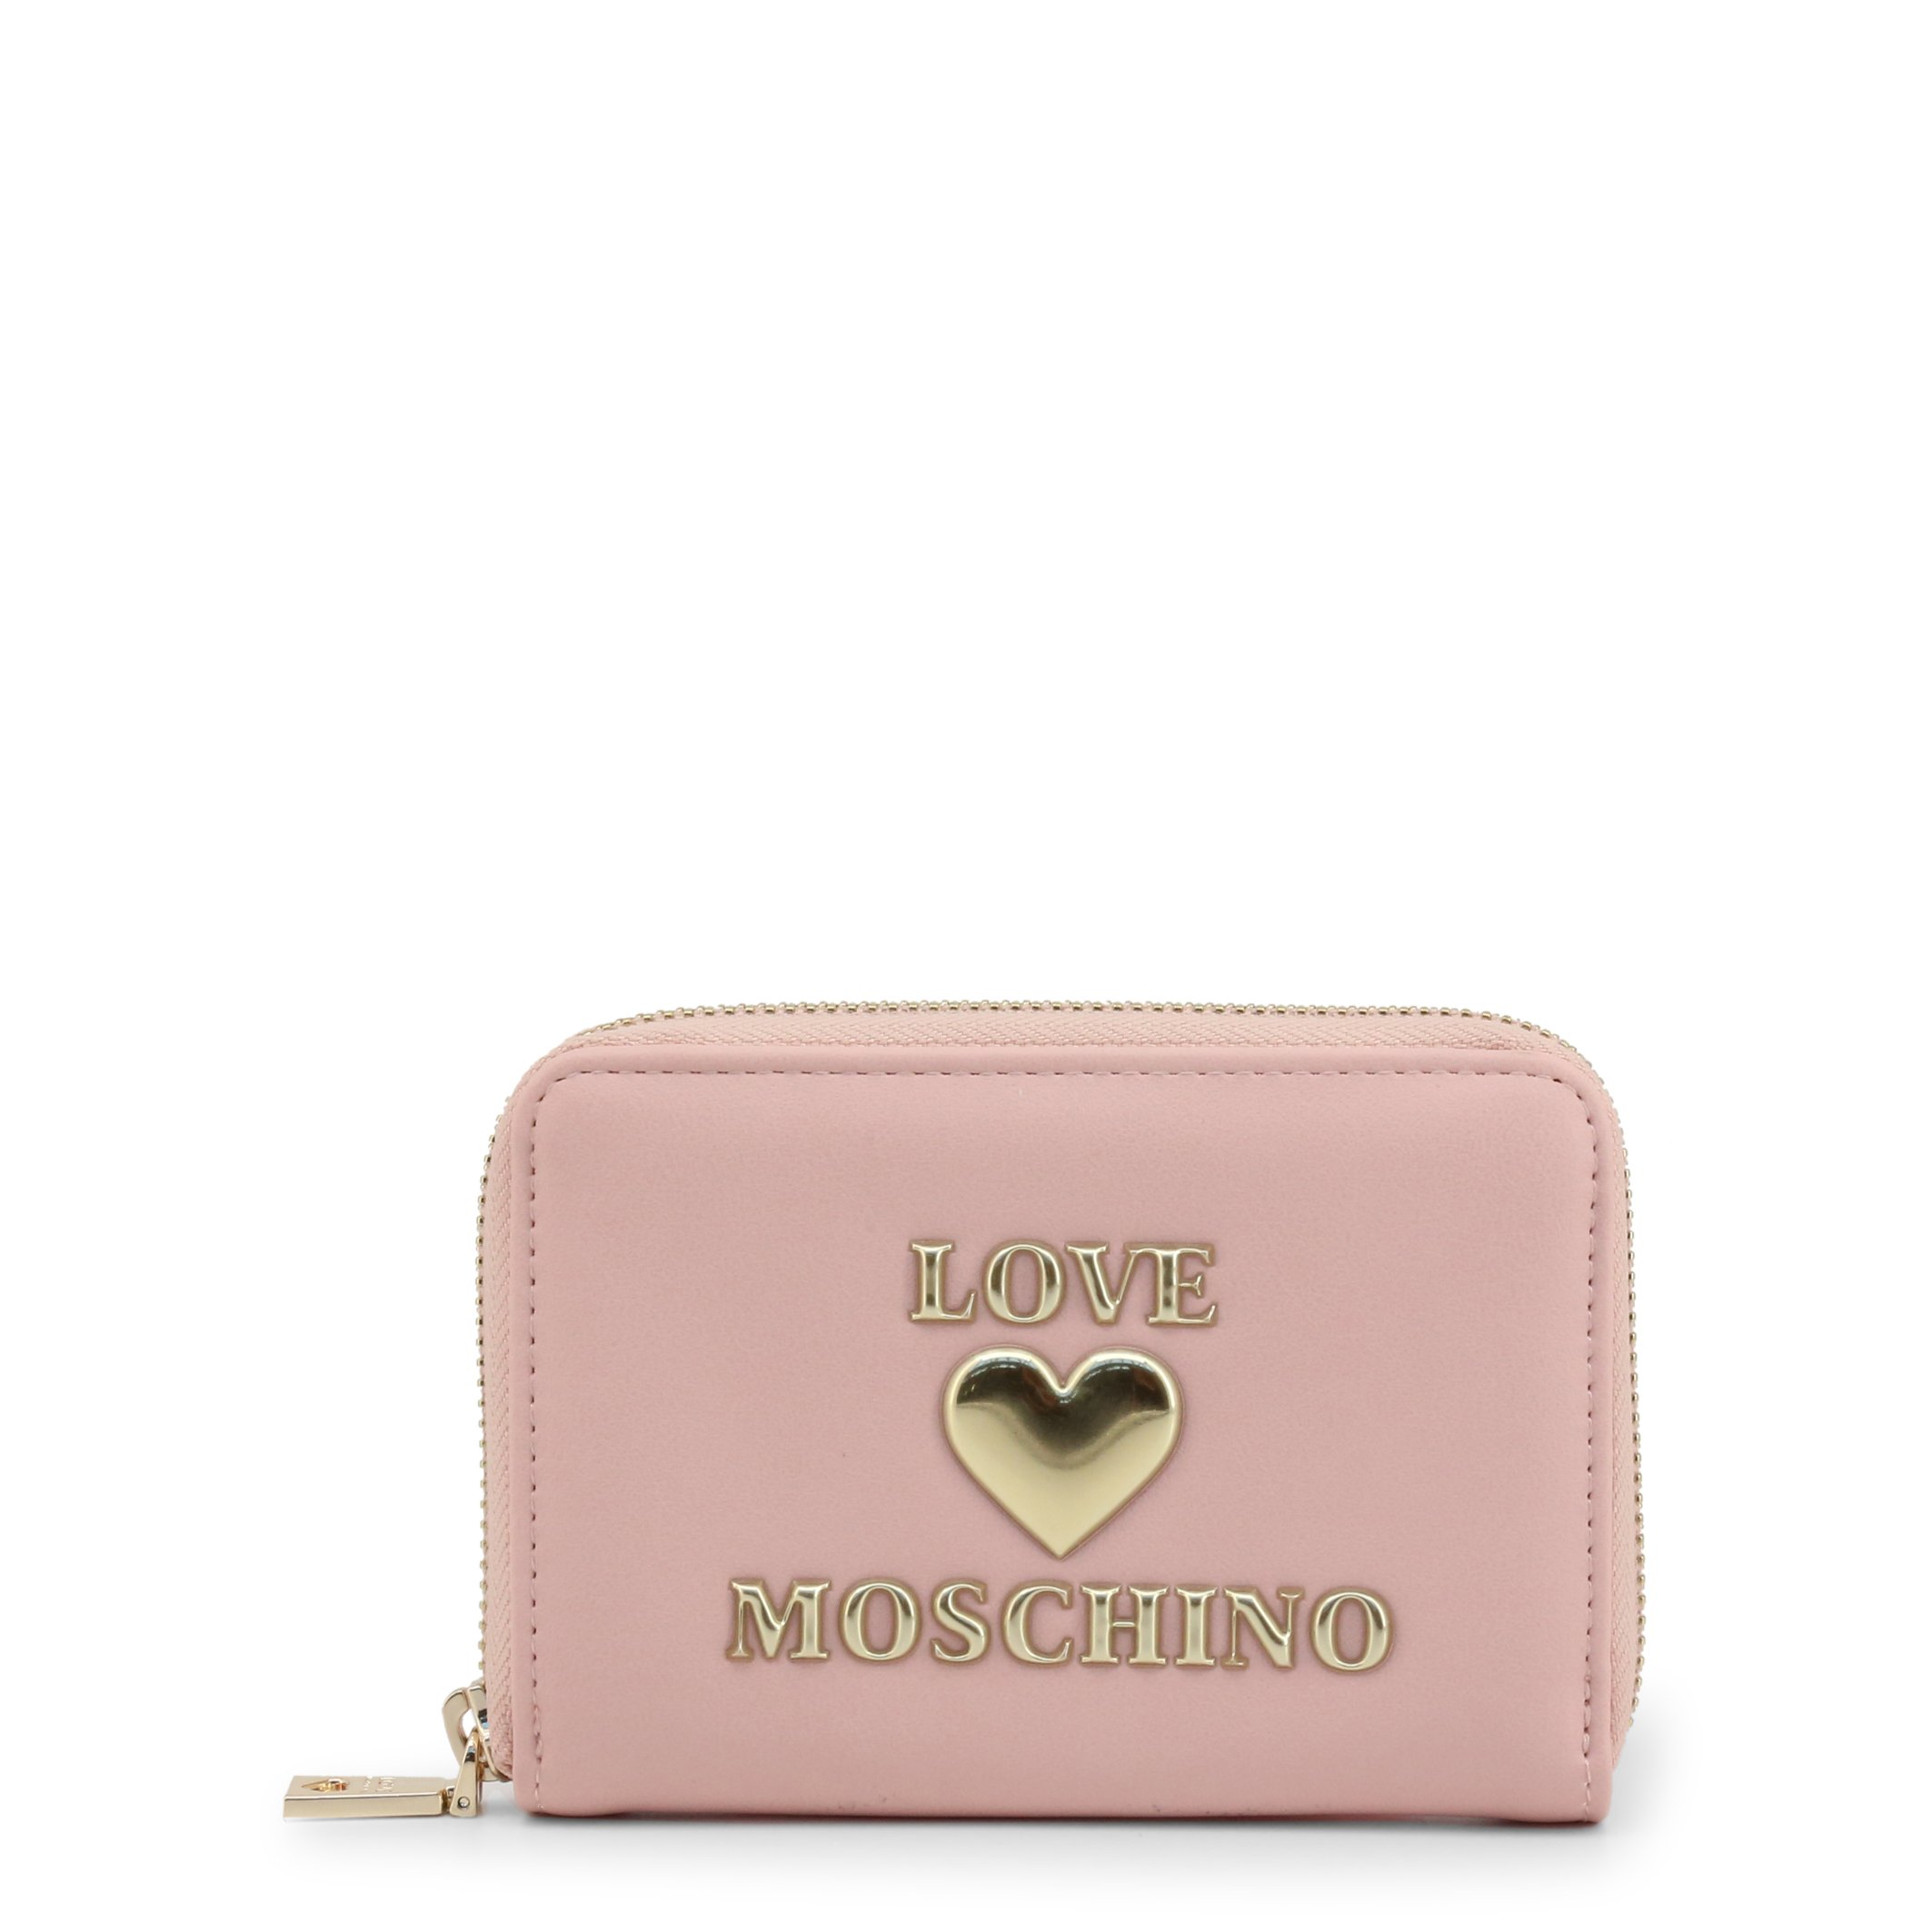 Love Moschino Women's Wallet Various Colours JC5610PP1BLE - pink NOSIZE